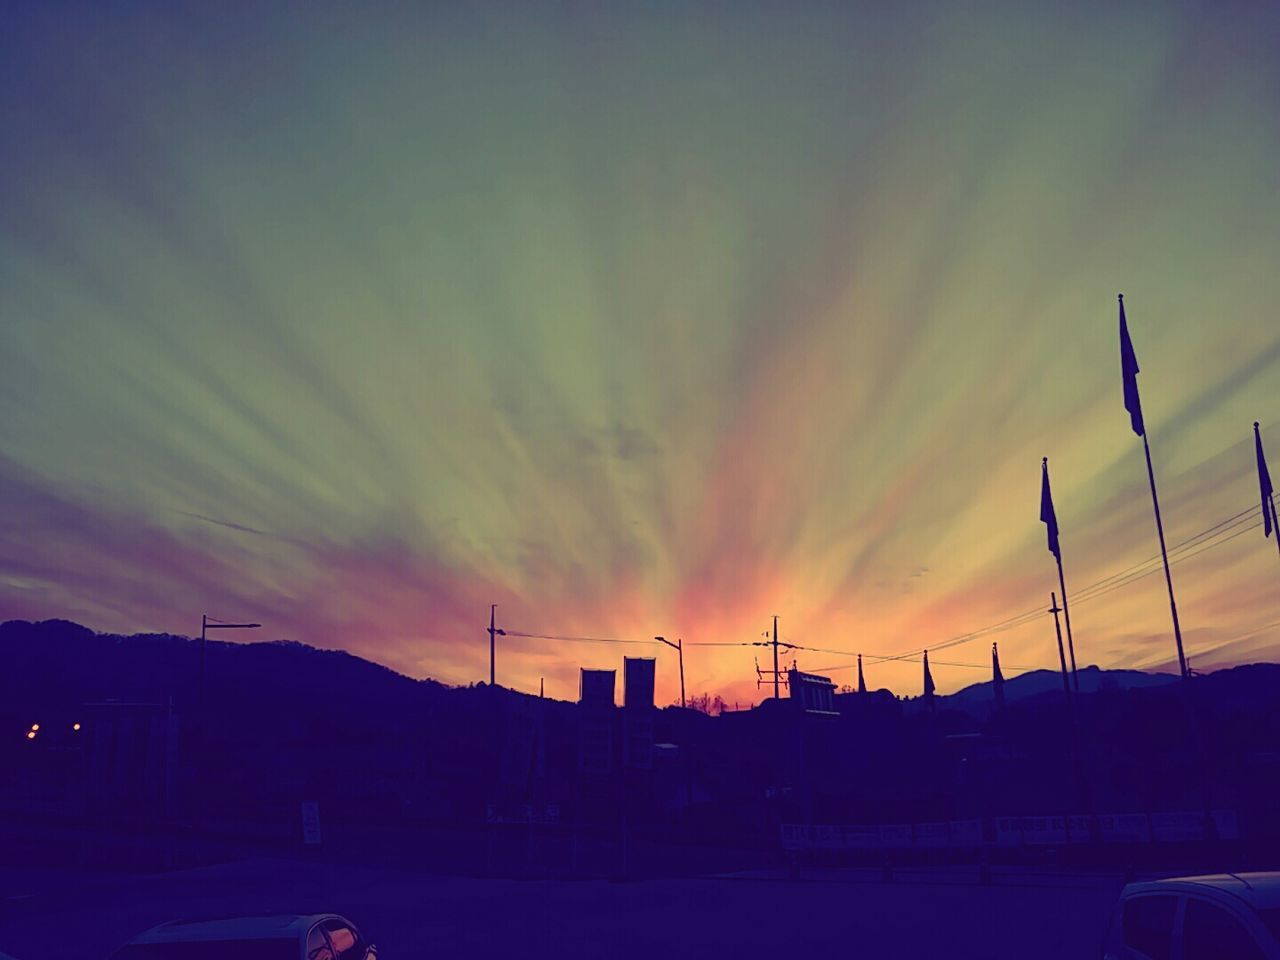 sunset, sky, silhouette, no people, built structure, architecture, cloud - sky, building exterior, nature, outdoors, beauty in nature, scenics, city, day